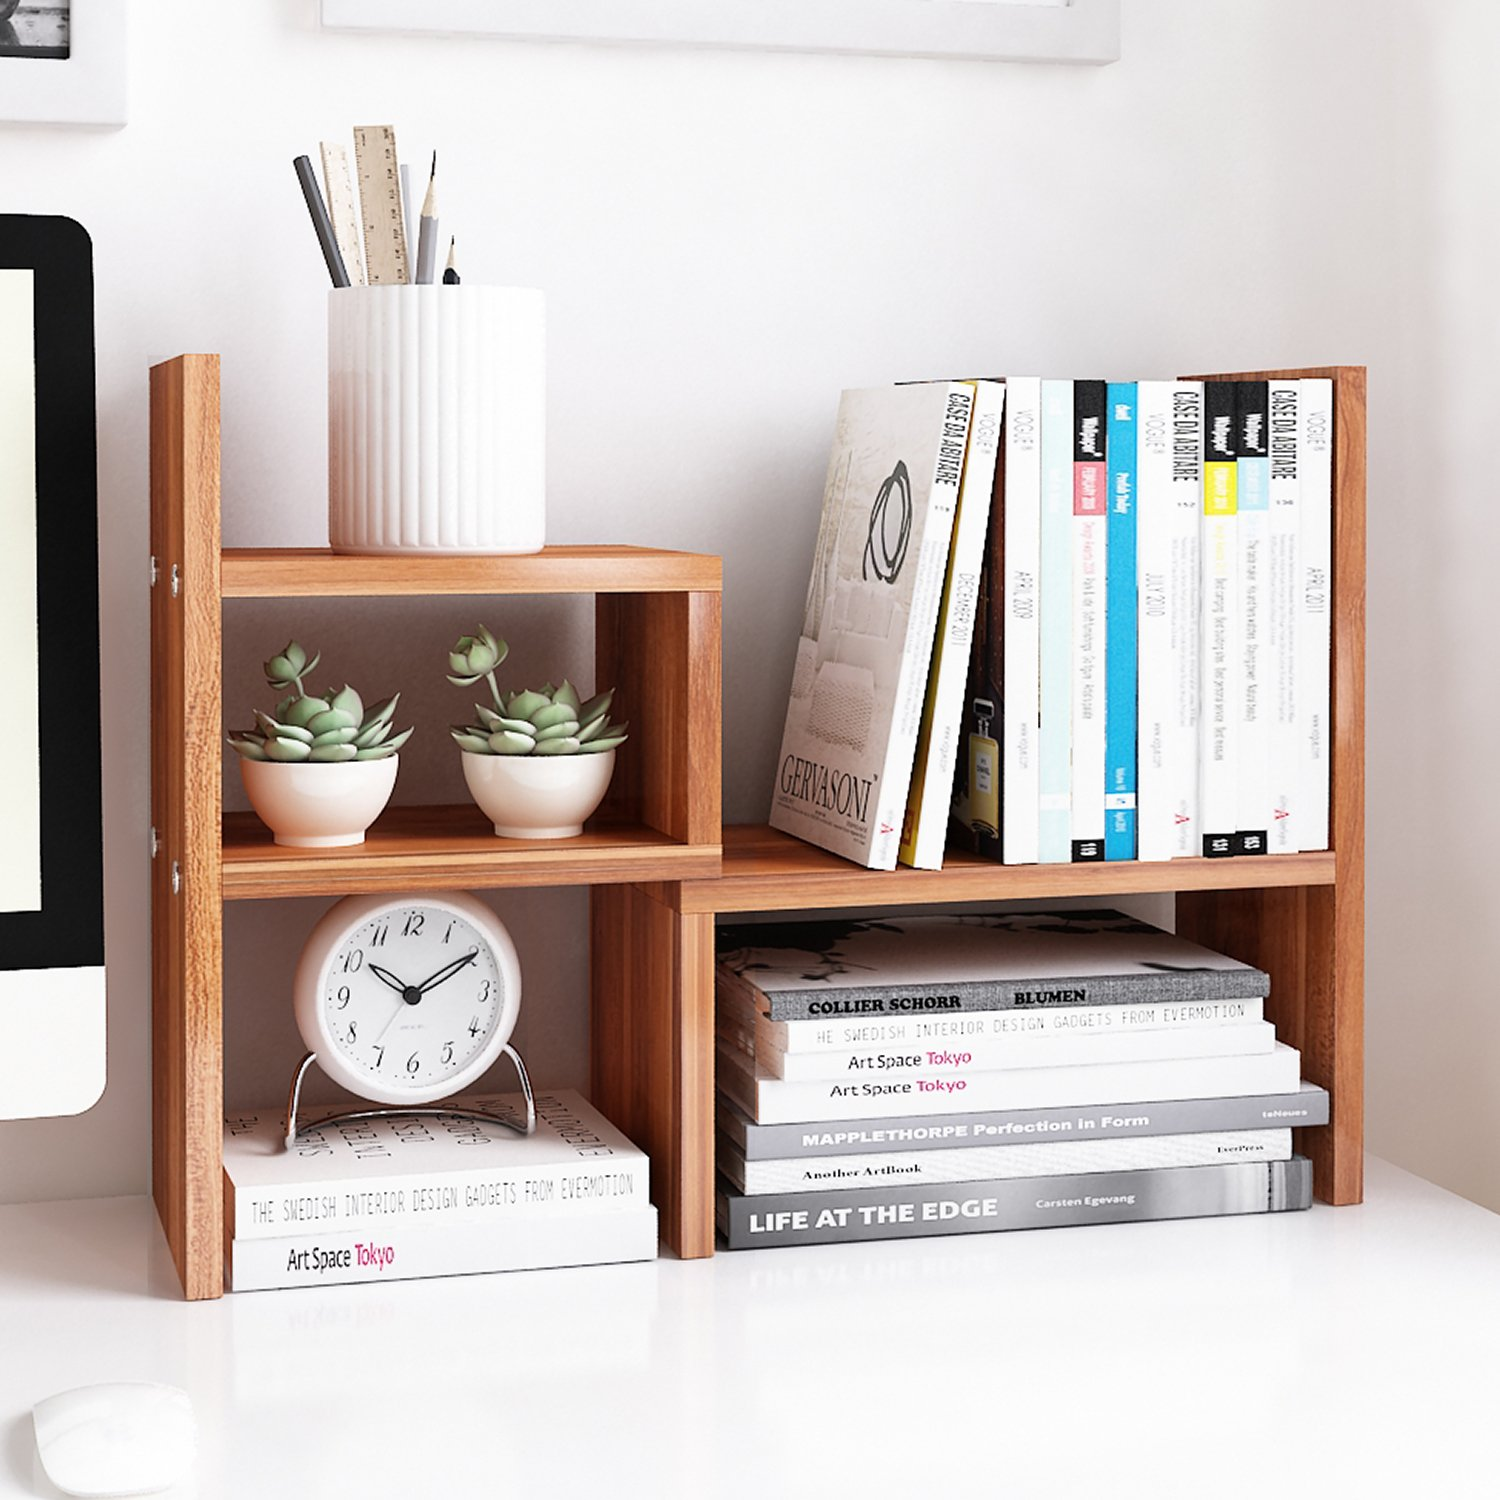 Jerry & Maggie - Desktop Organizer Office Storage Rack Adjustable Wood Display Shelf | Birthday Gifts - Toy - Home Decor | - Free Style Rotation Display - True Natural Stand Shelf (Natrual Wood Tone) by Jerry & Maggie